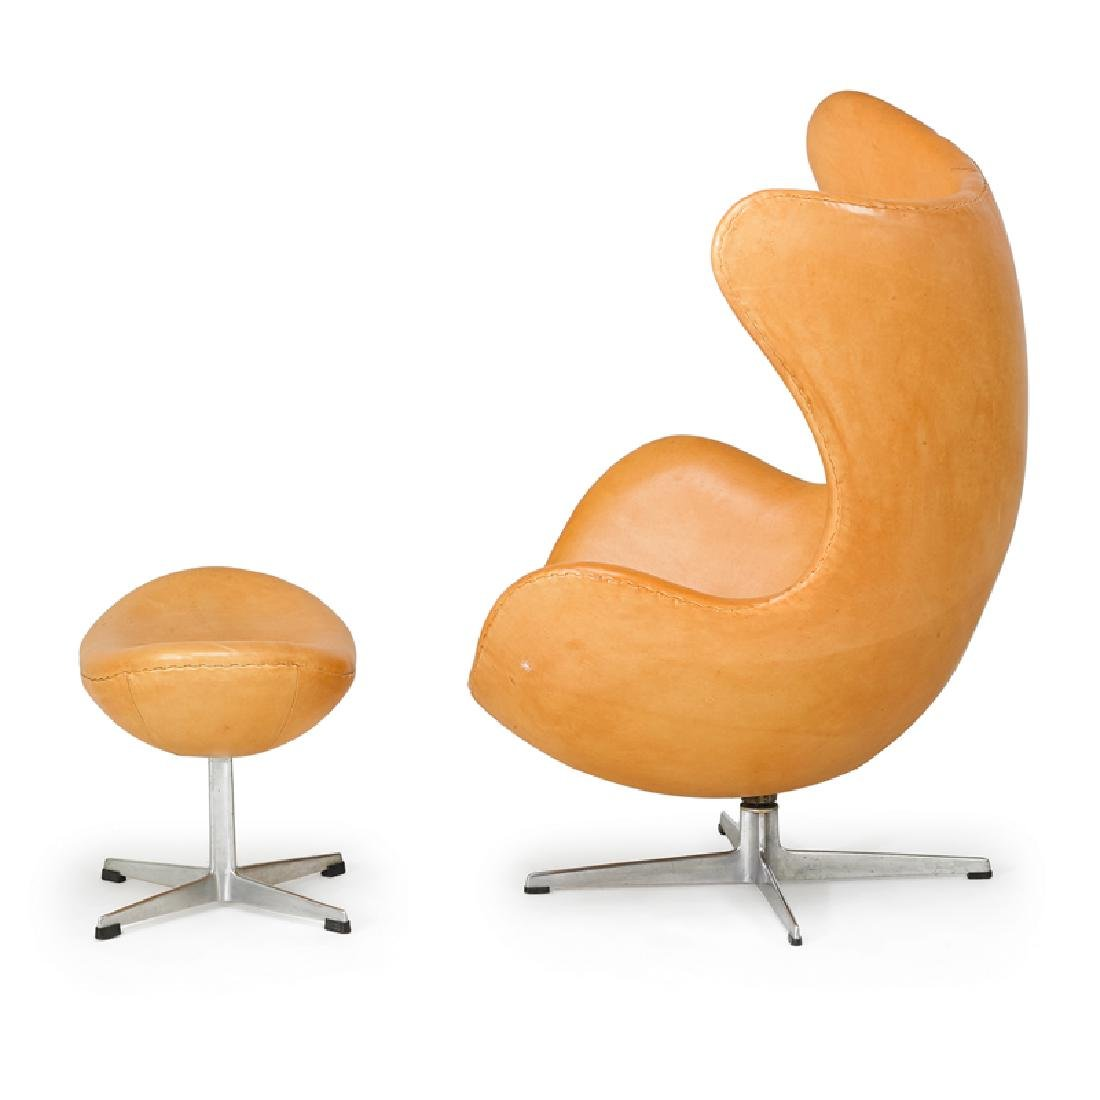 ARNE JACOBSEN  FRITZ HANSEN Egg chair and ottoman - 2